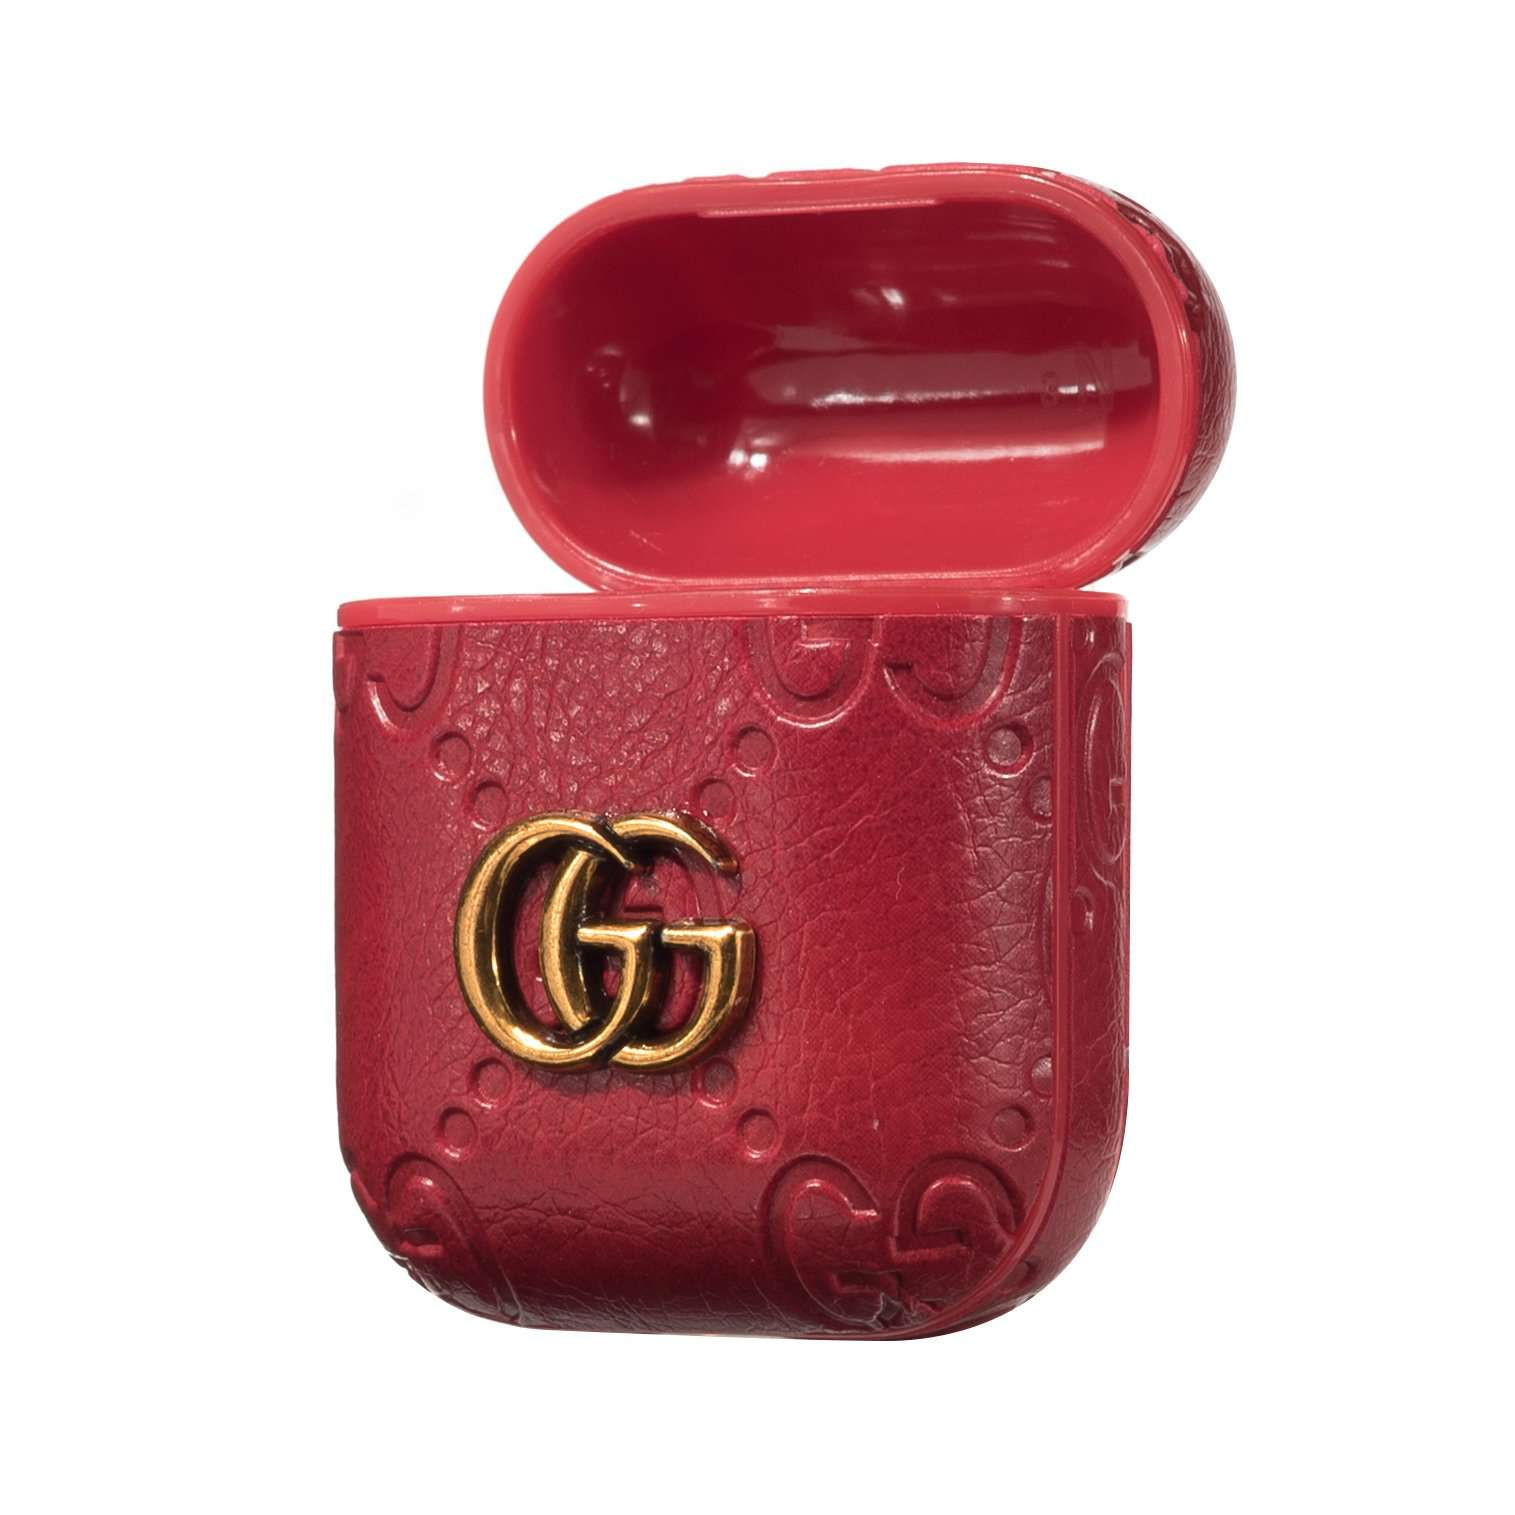 Gucci GG AirPods Leather Protective Shockproof Case